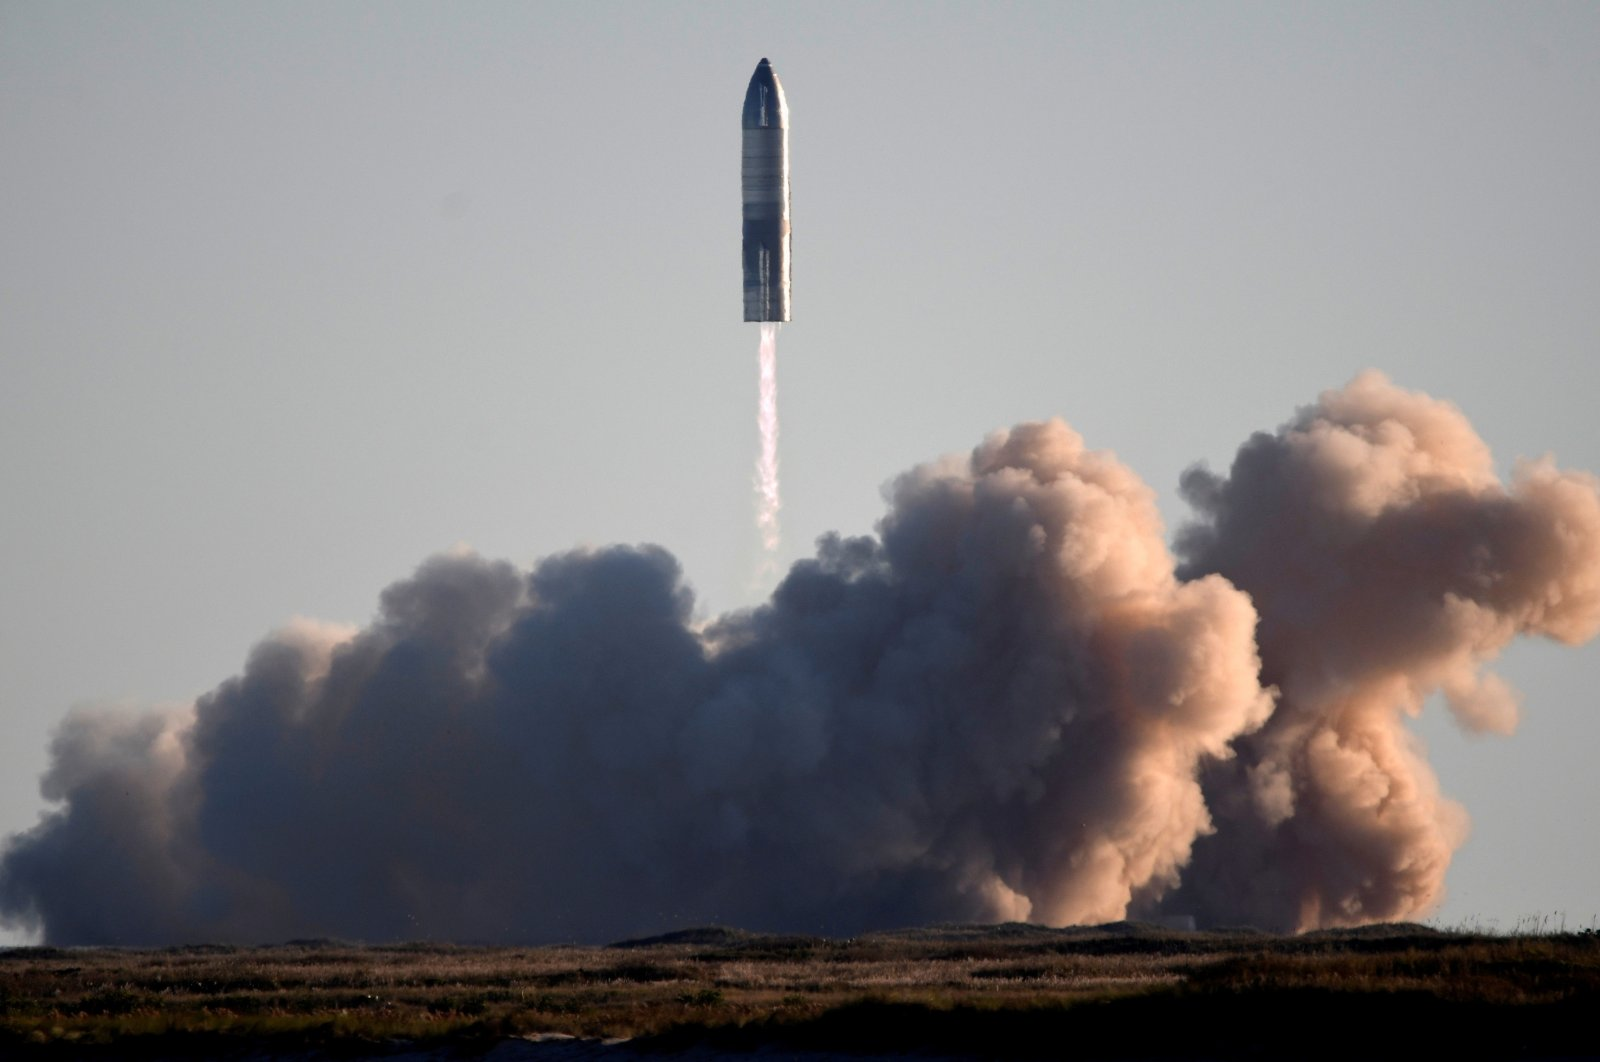 SpaceX launches its first super heavy-lift Starship SN8 rocket during a test from their facility in Boca Chica, Texas, U.S. Dec. 9, 2020. (Reuters File Photo)